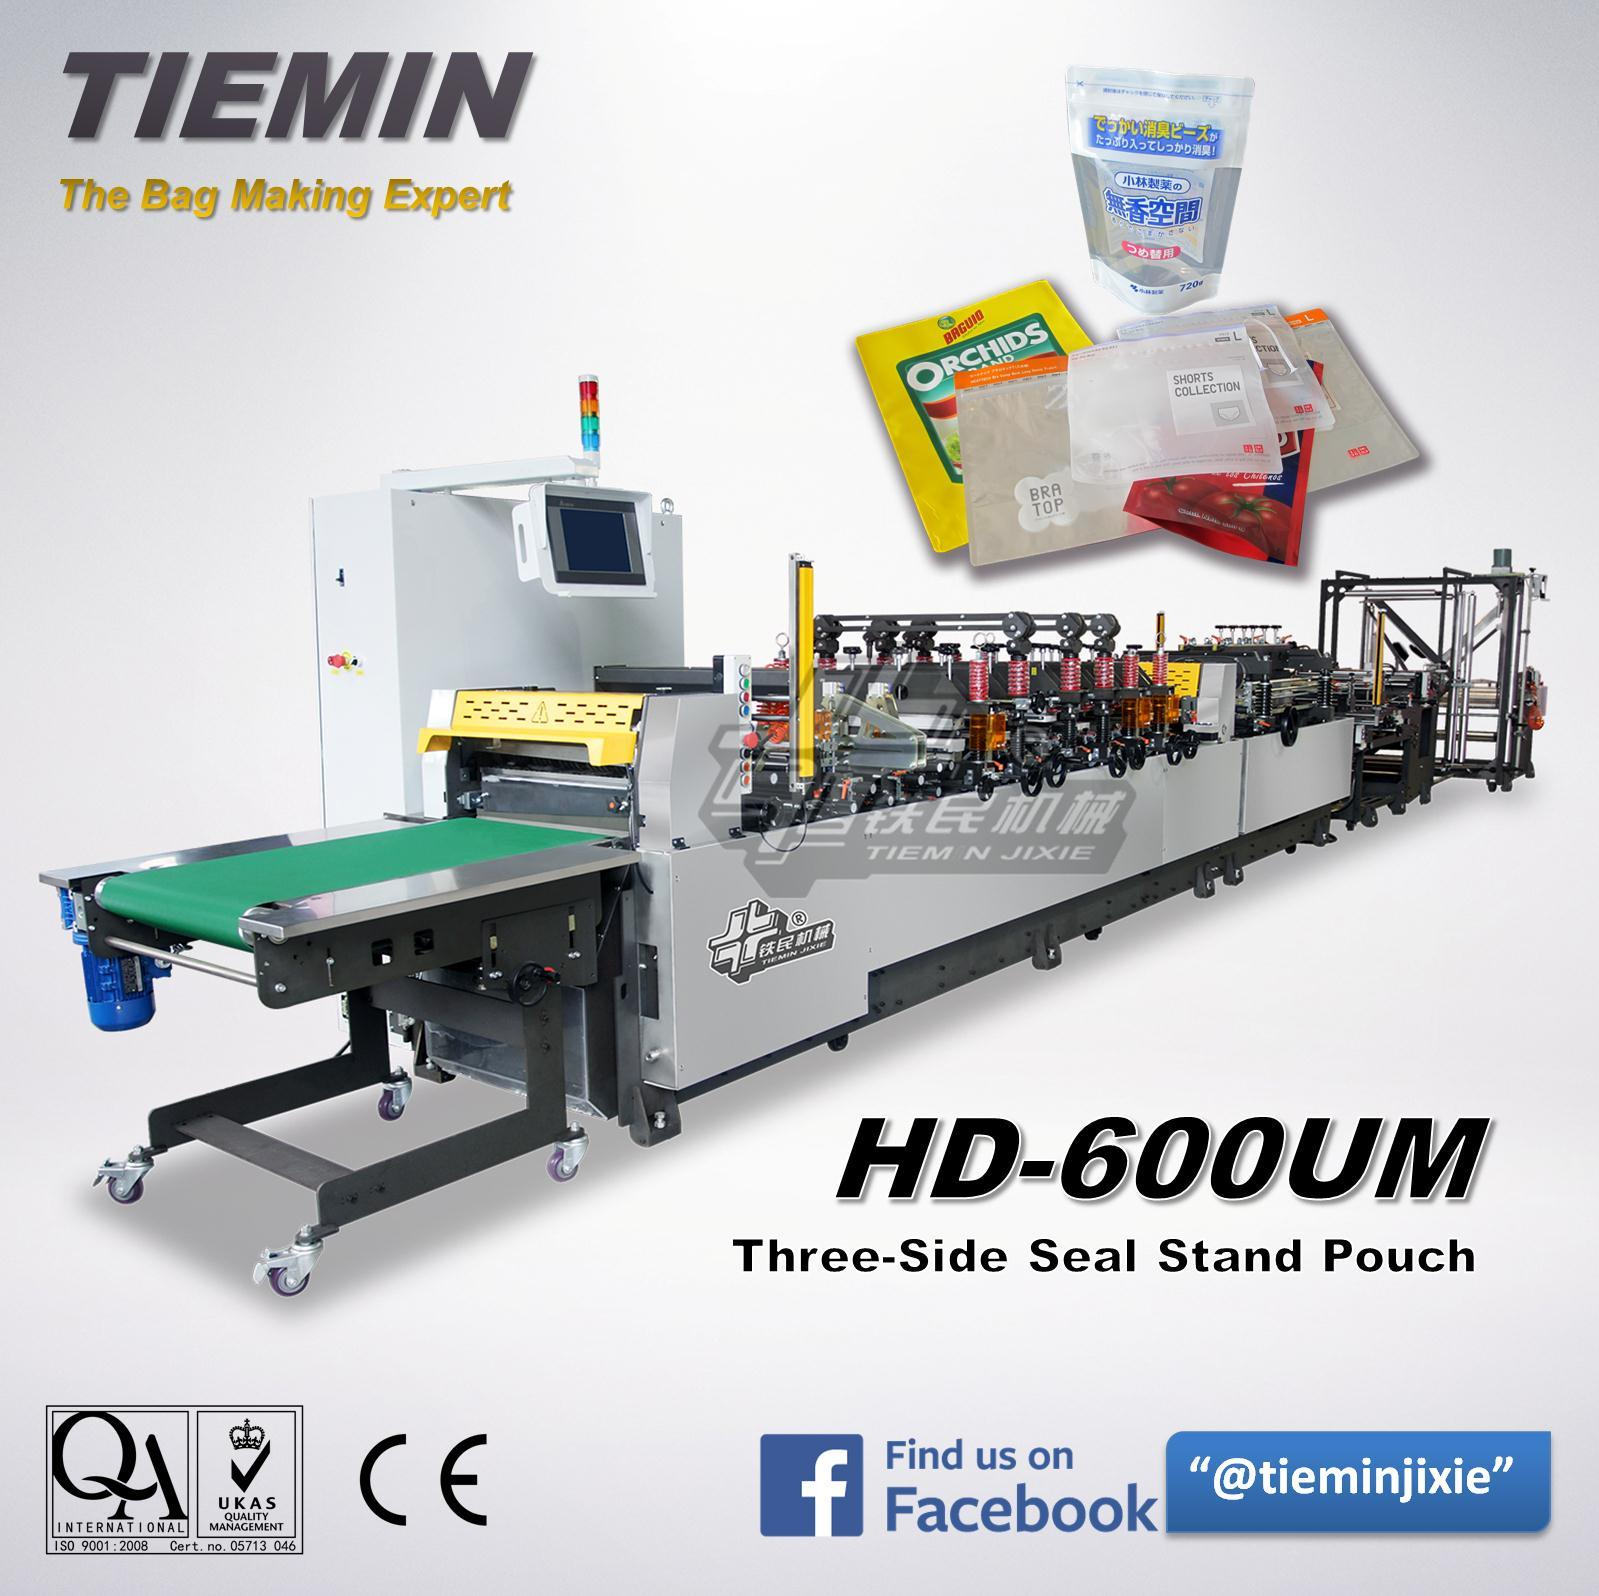 Tiemin High Quality High Speed Automatic Three-Side Bag-Making Machine (One Piece Structure Stand Pouch Bag Making Machine) HD-600um